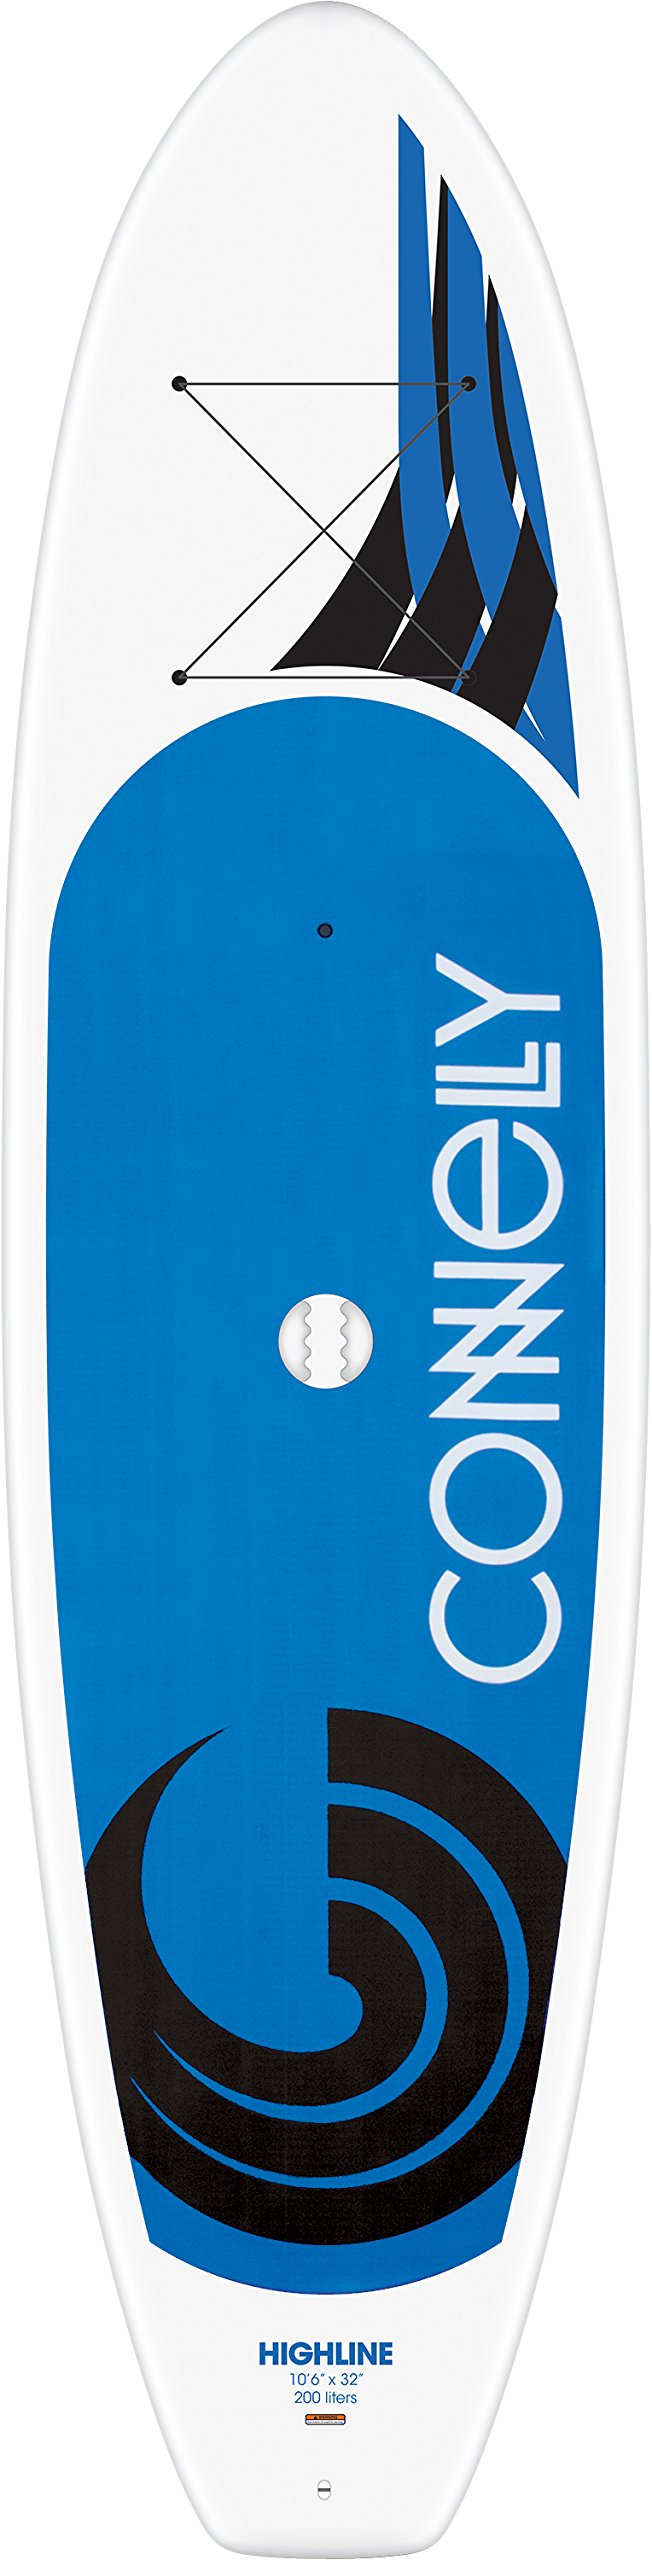 Connelly Highline Stand Up 2017 Paddleboard with Paddle, 10'6'' x 32'' by CWB